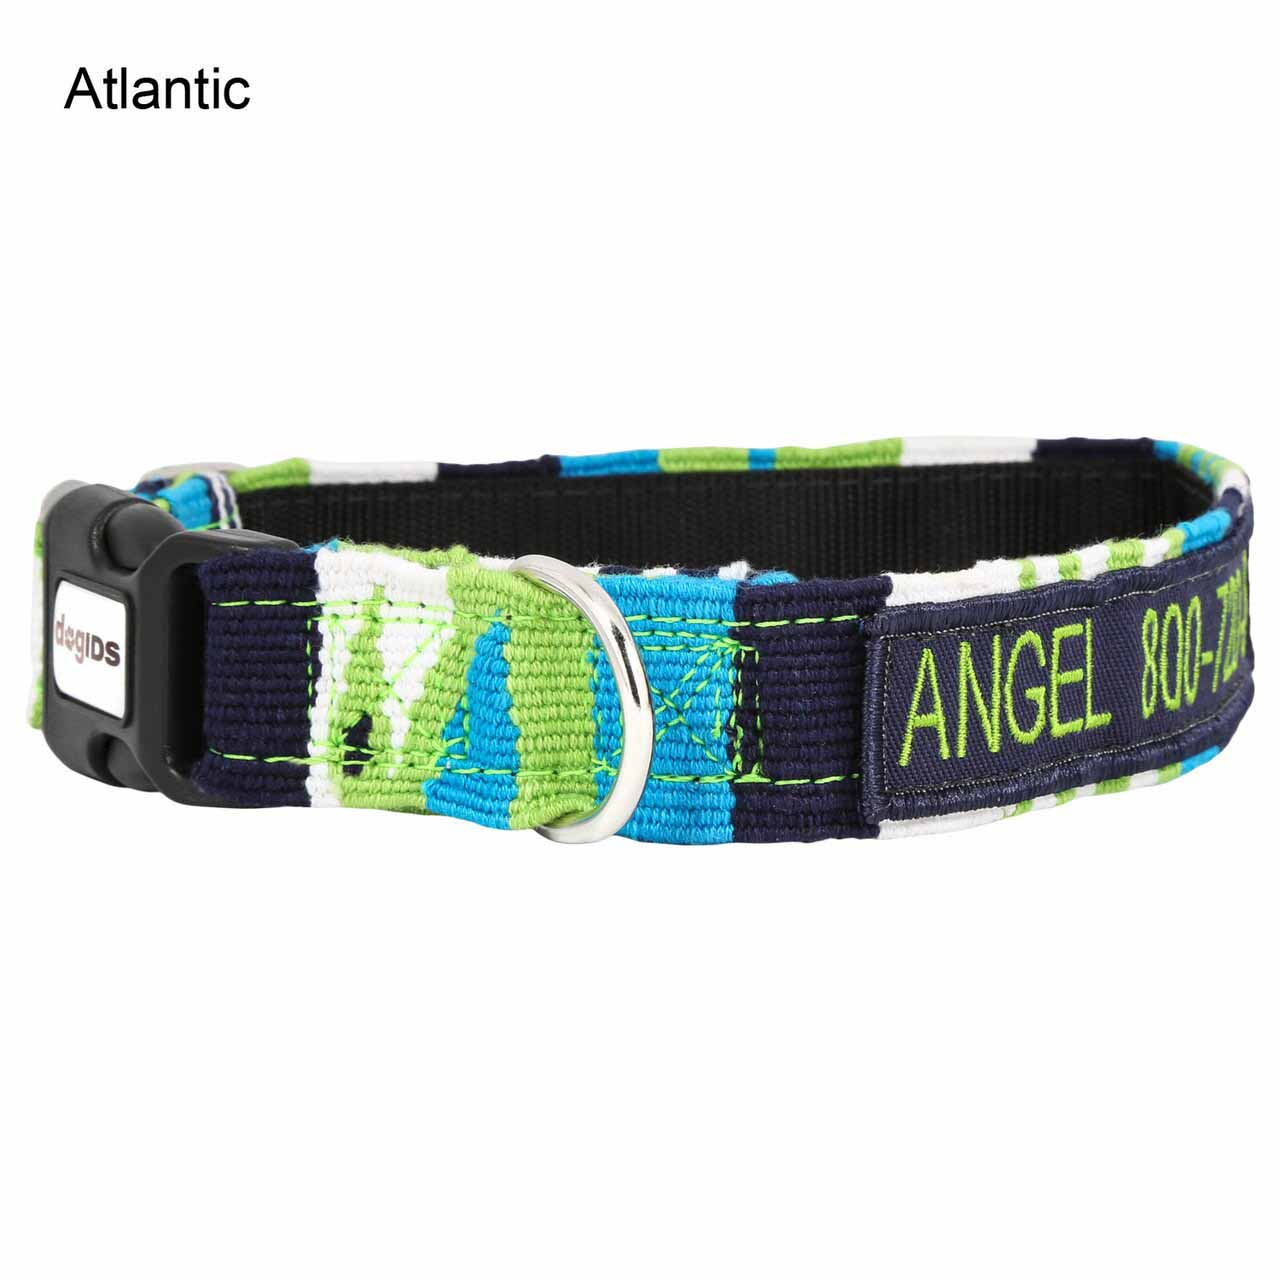 Embroidered Maya Personalized Dog Collar Atlantic